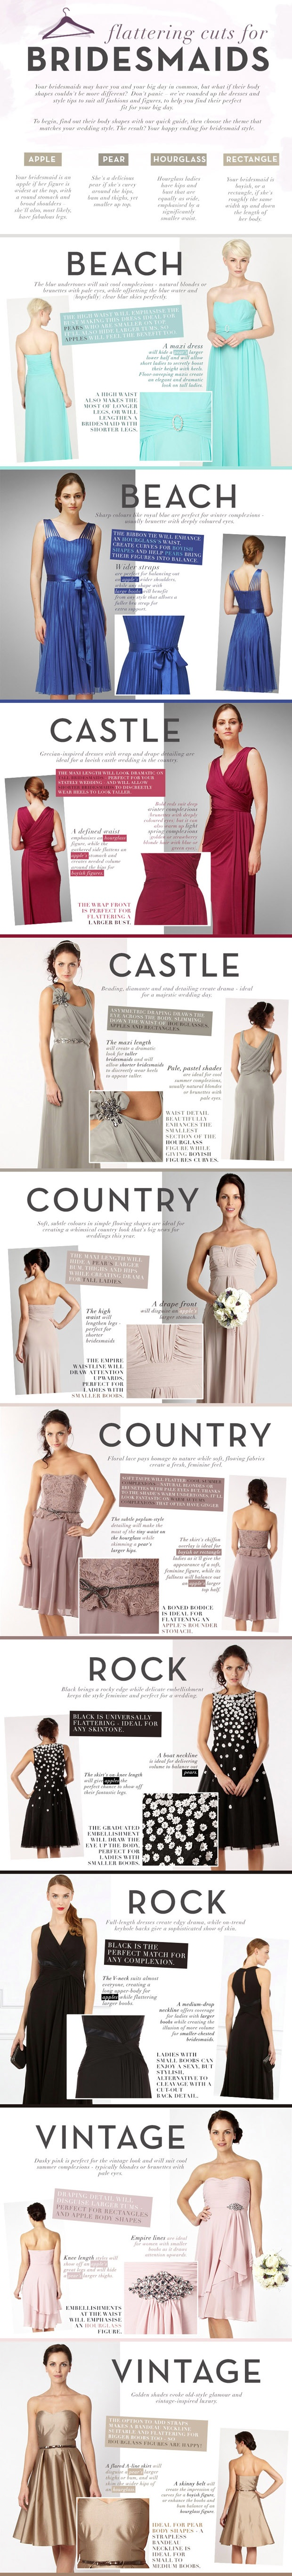 Flattering Cuts for Bridesmaids | Infographic by Debenhams and Debenhams Wedding Insurance